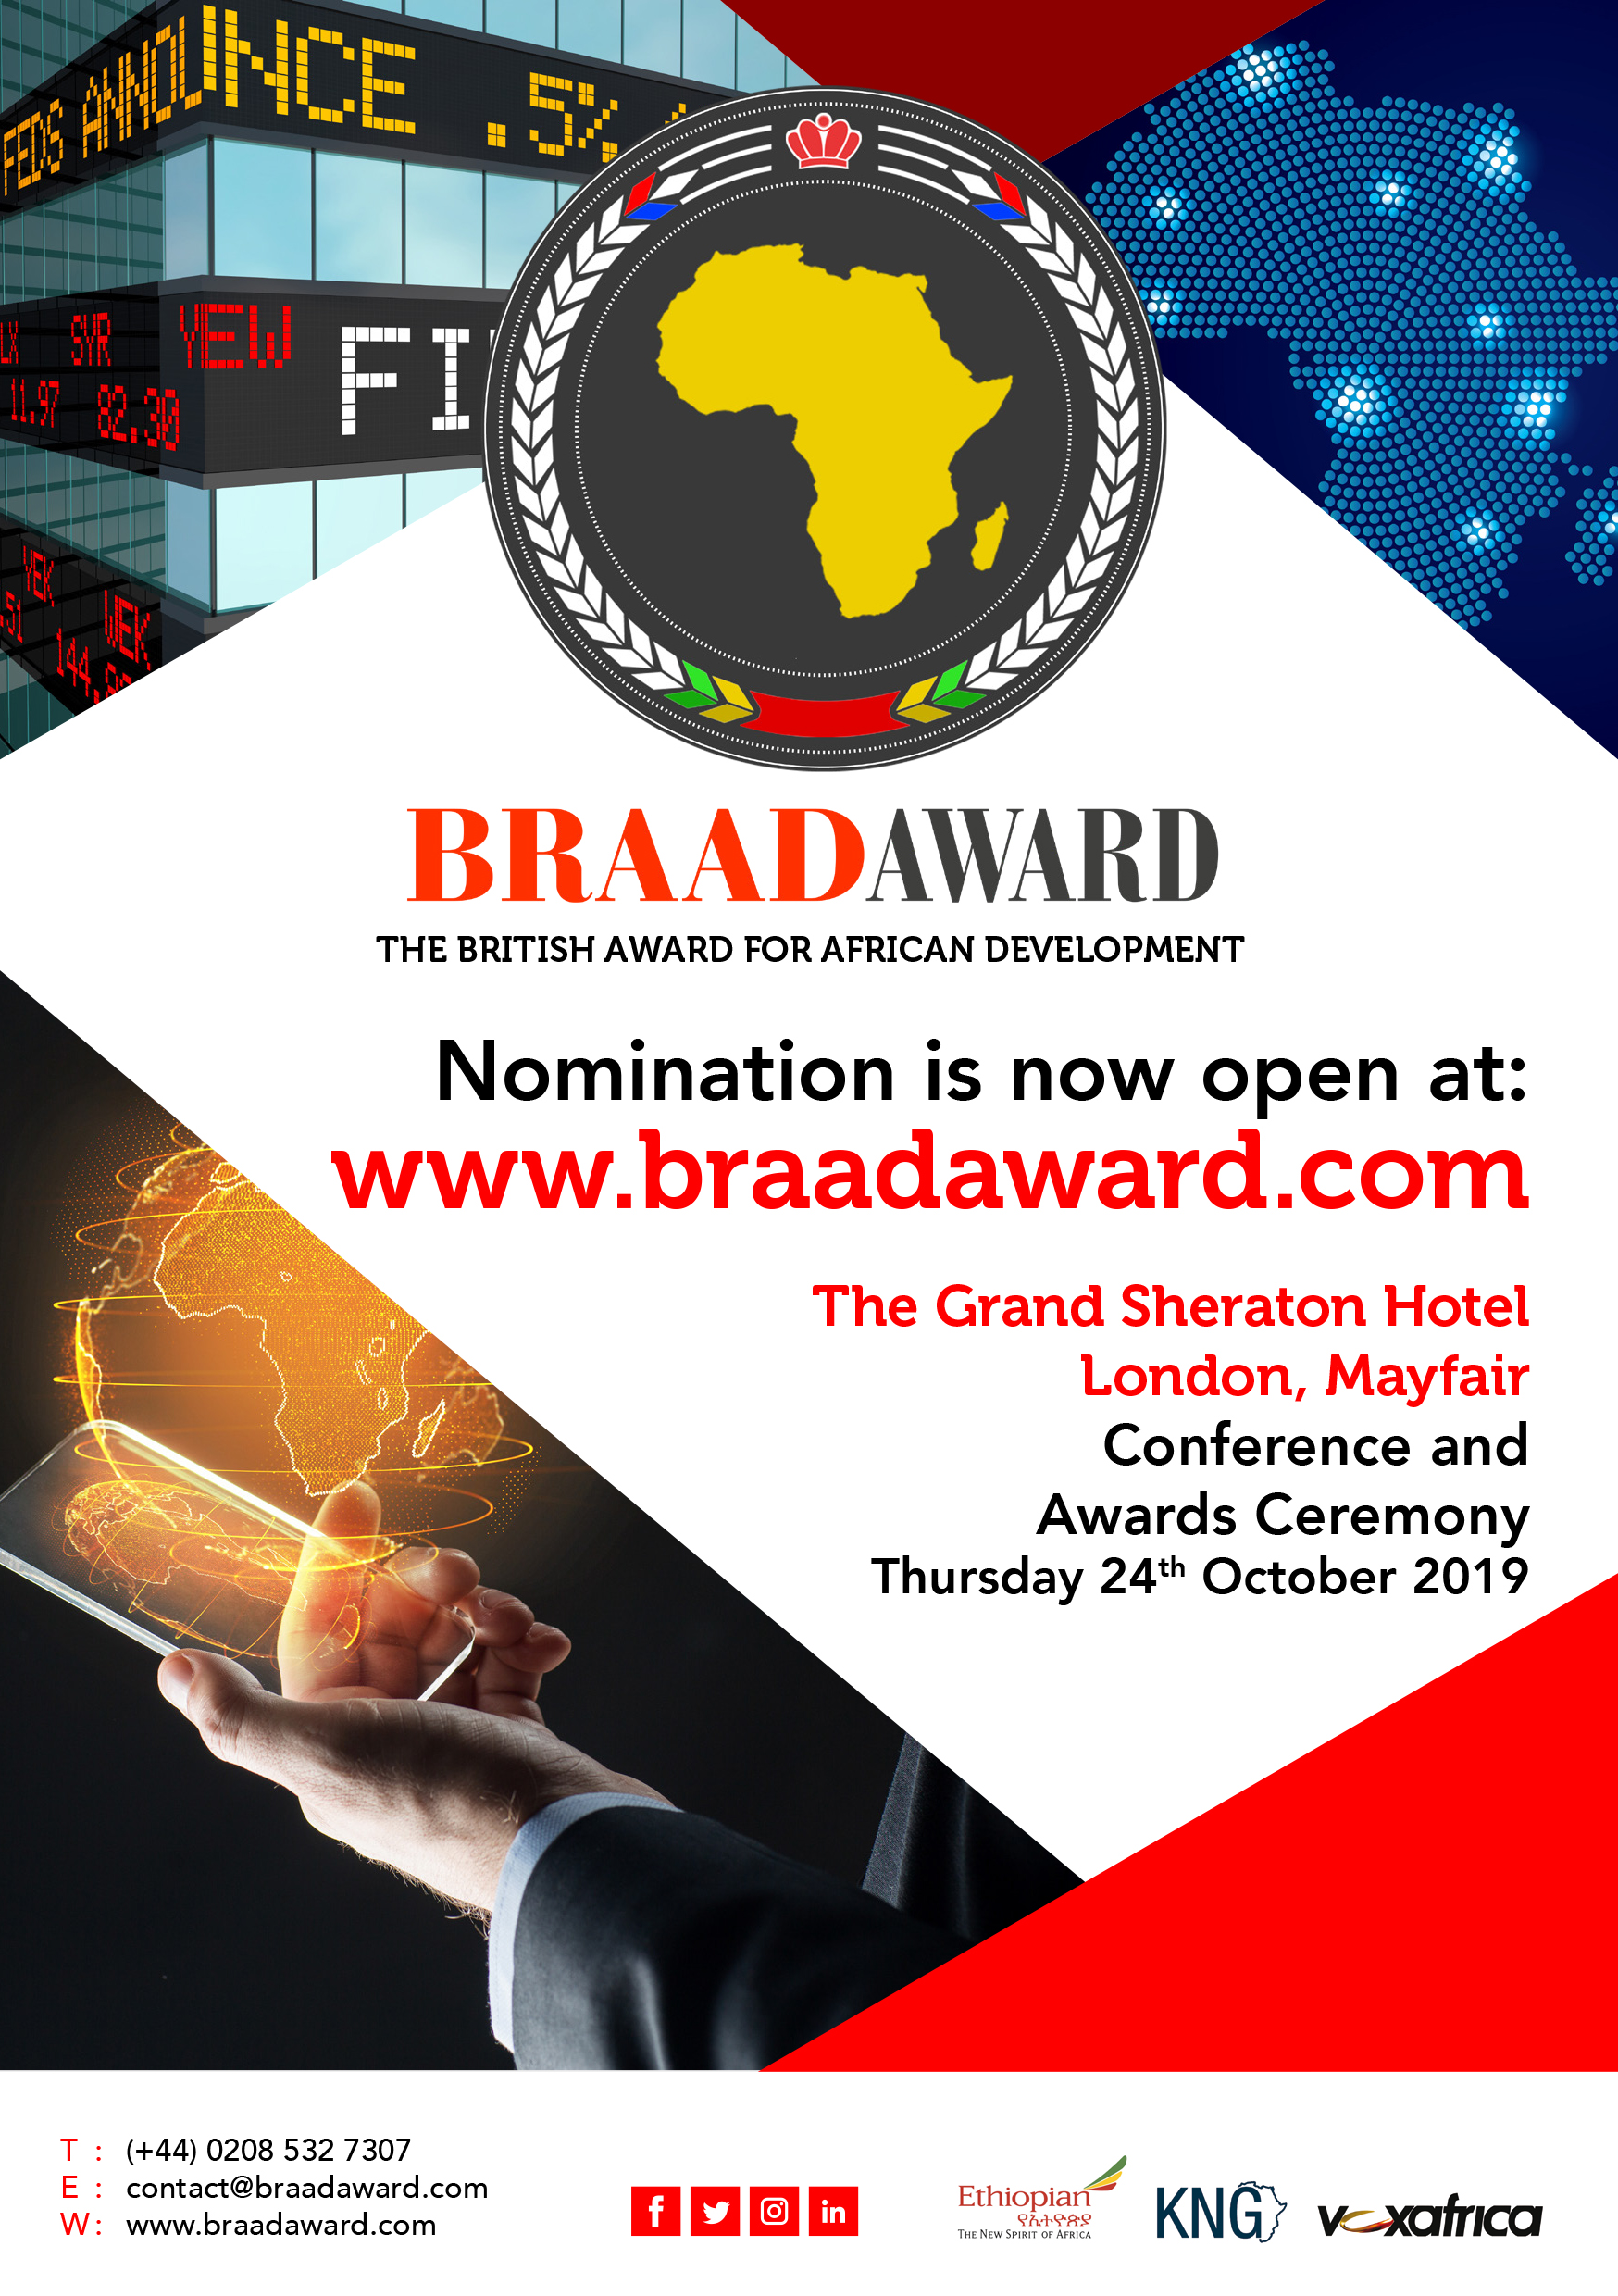 THE BRAAD AWARD 2019 | THURSDAY 24TH OCTOBER 2019 | LONDON, MAYFAIR